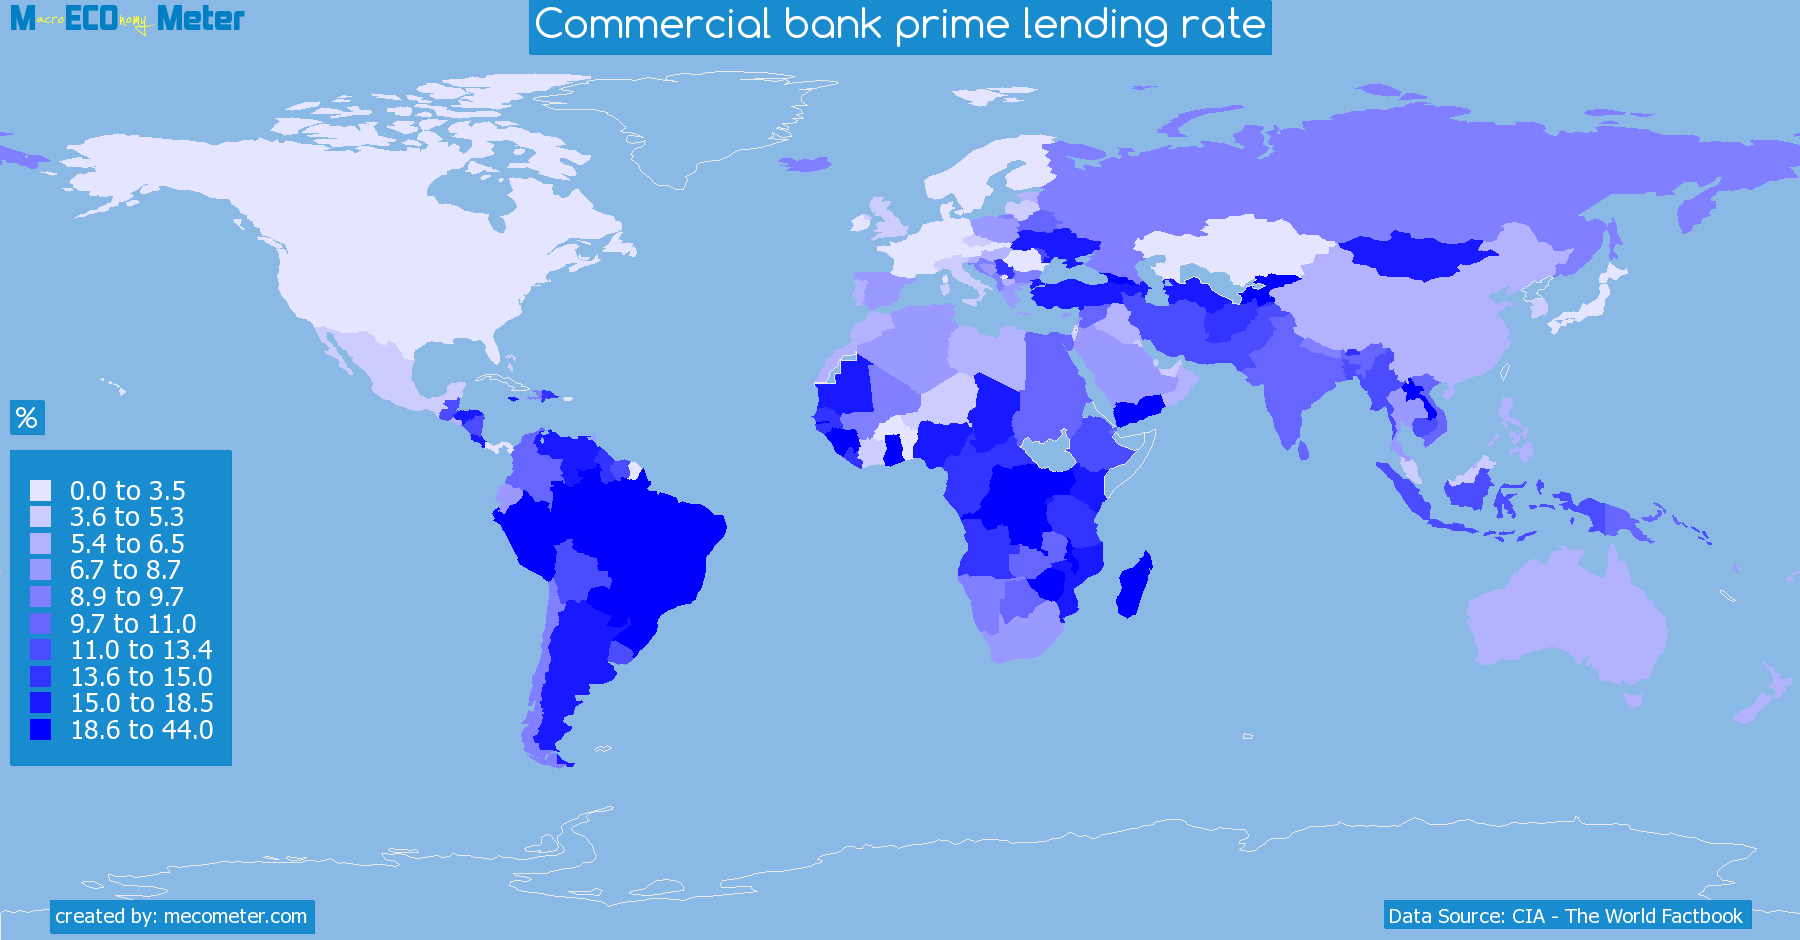 Commercial bank prime lending rate